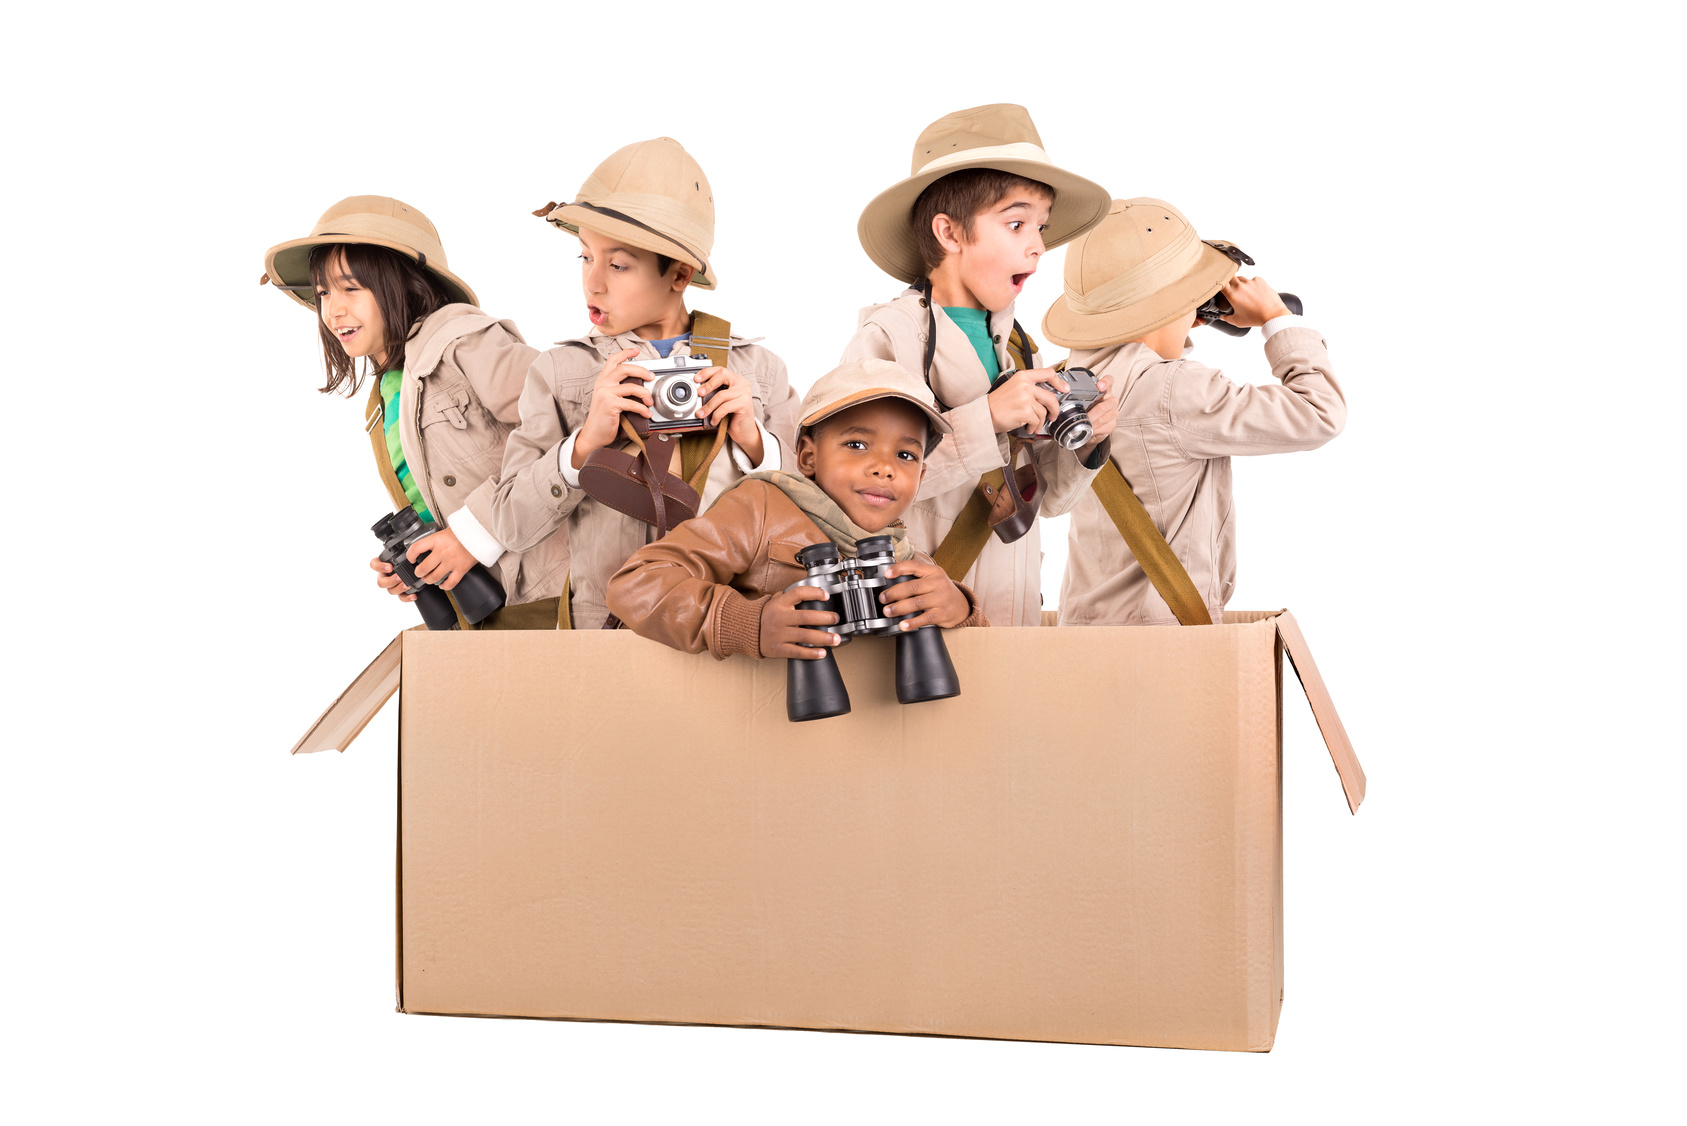 Children's group in a cardboard box playing safari